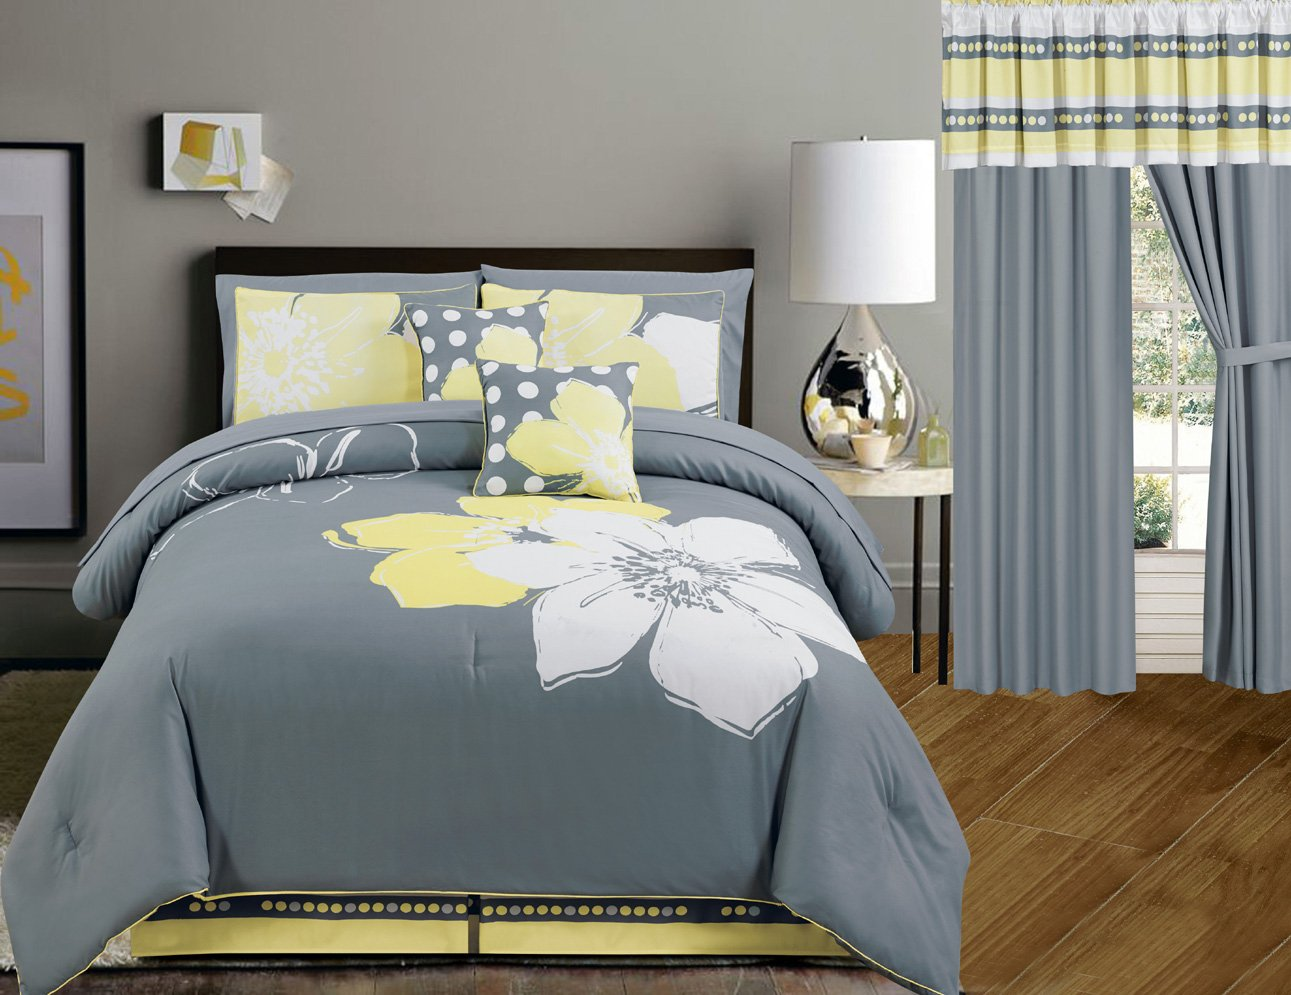 concept bedding grey gray queen beddingblack stirring black size of large and bed lostcoastshuttle yellow white picture blue set sets beddingblue beautiful